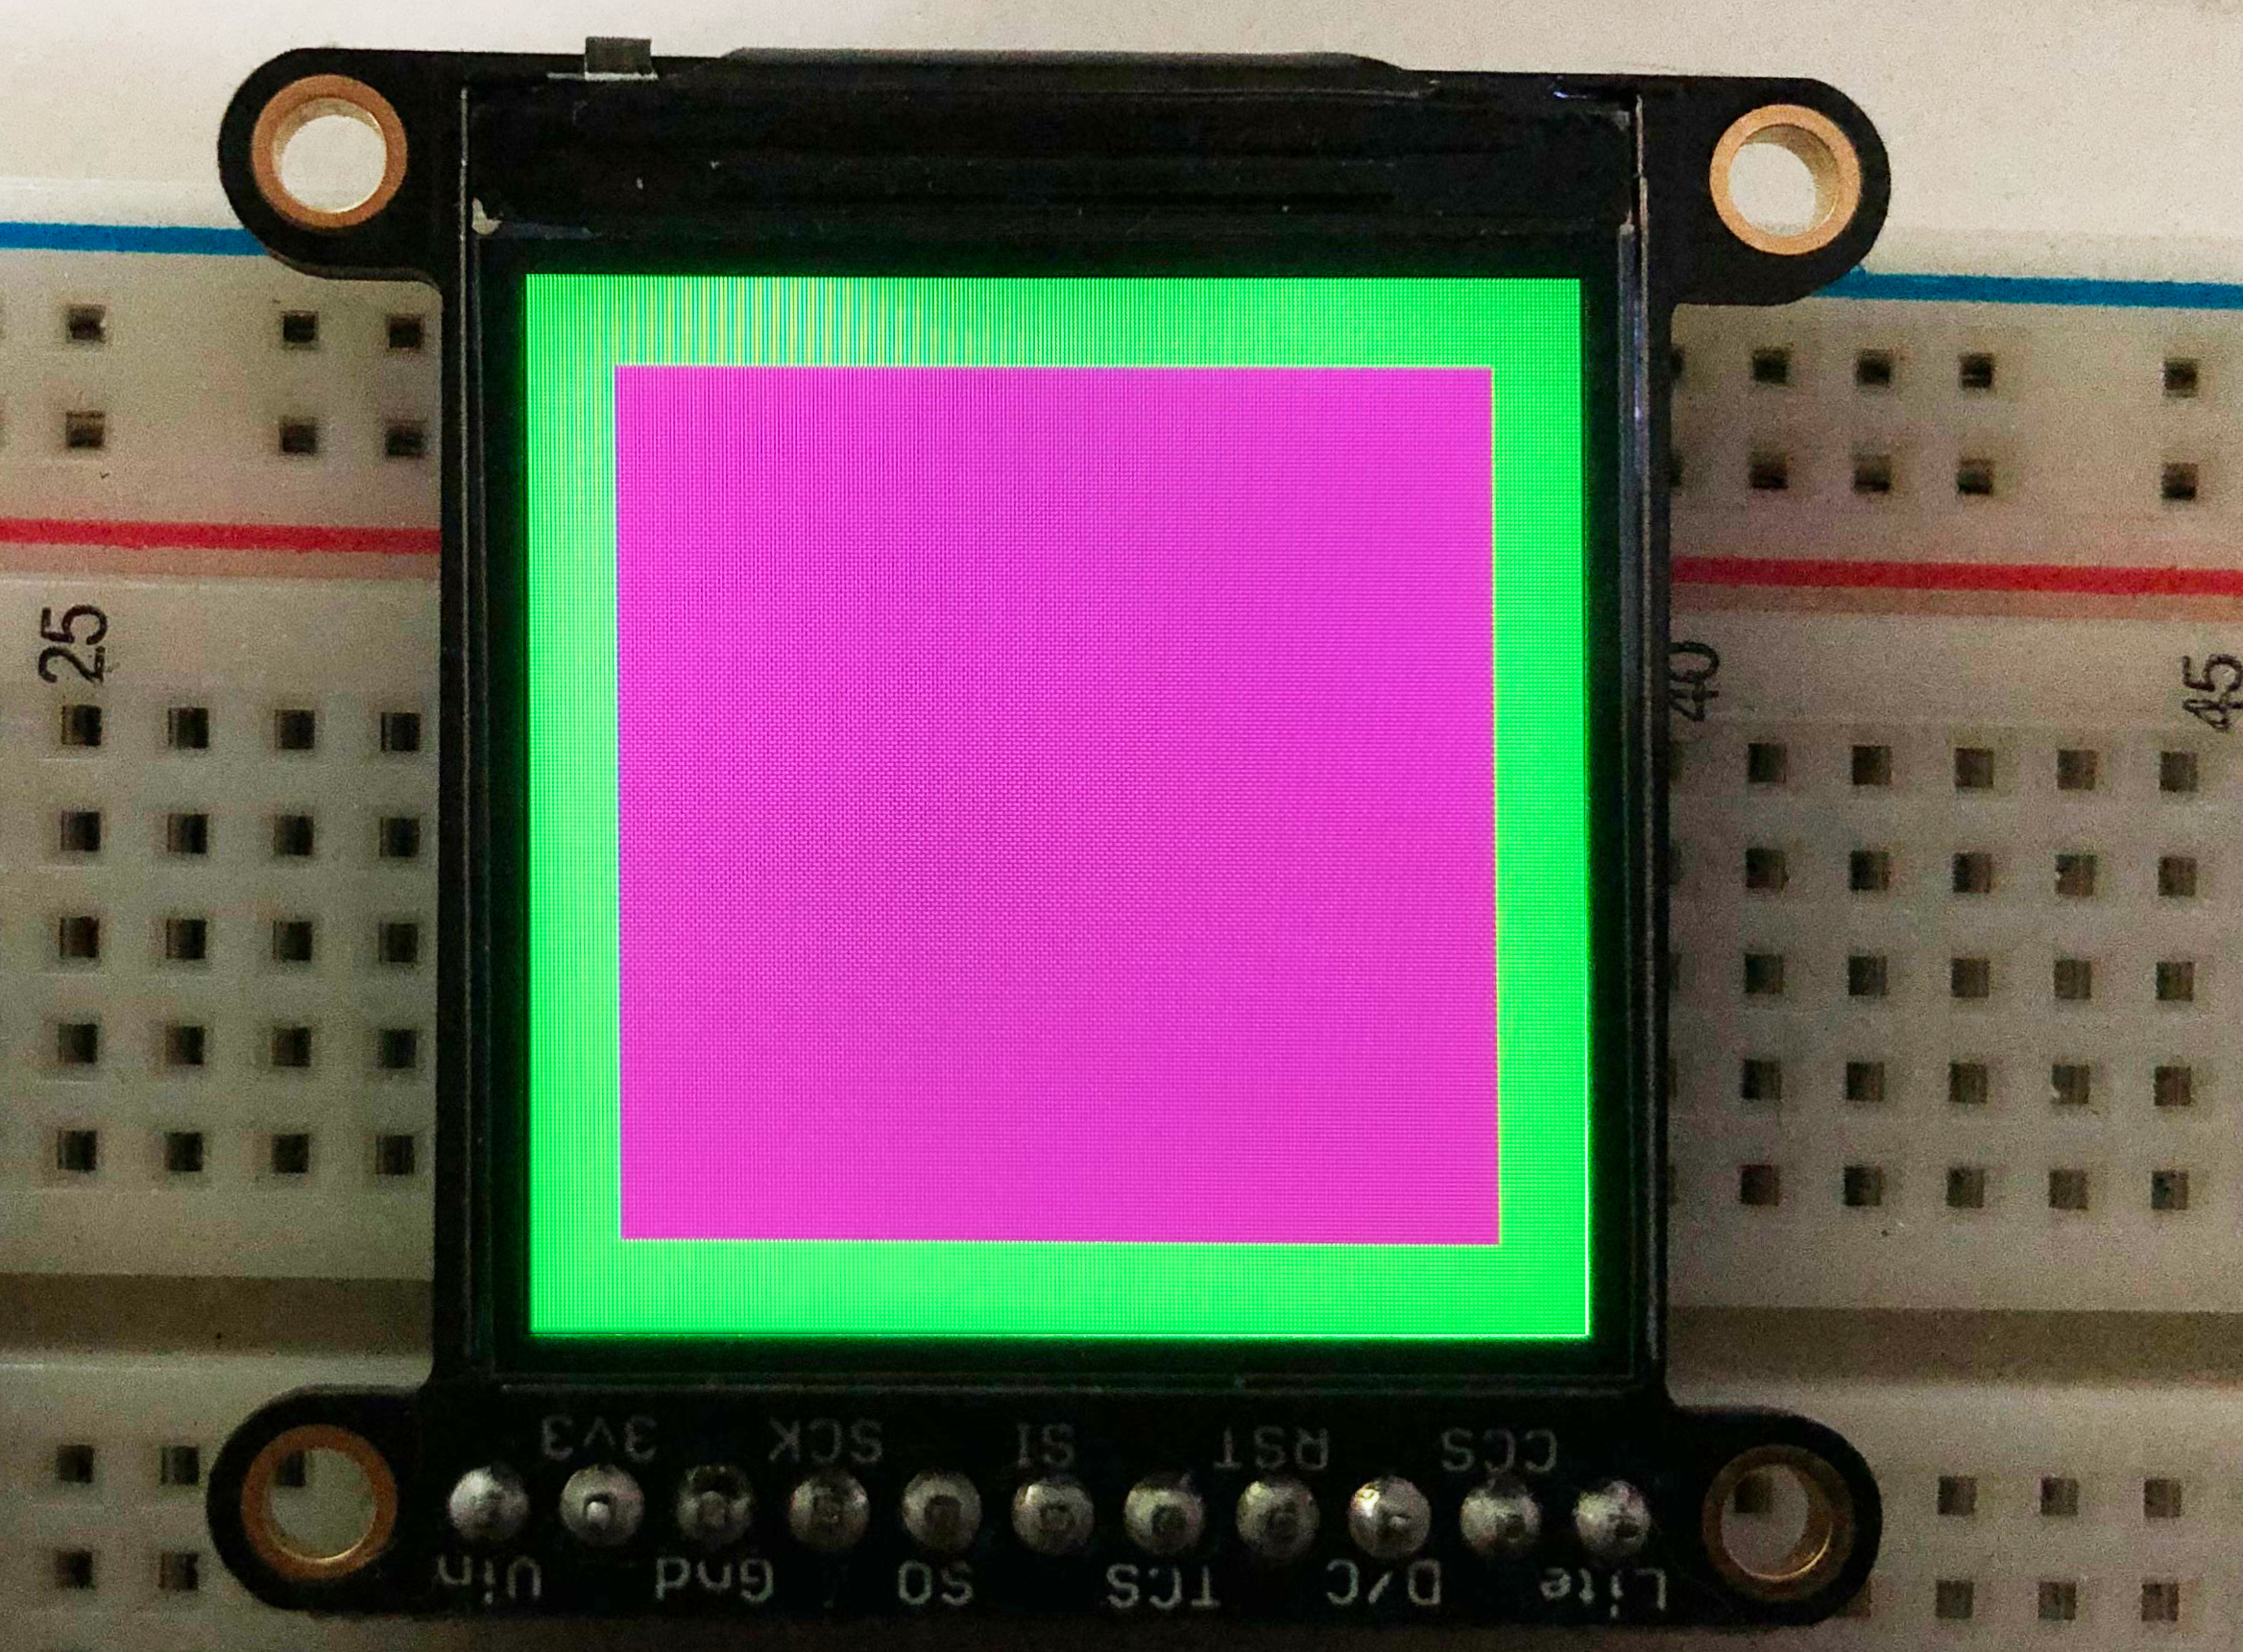 adafruit_products_green-purple.jpg